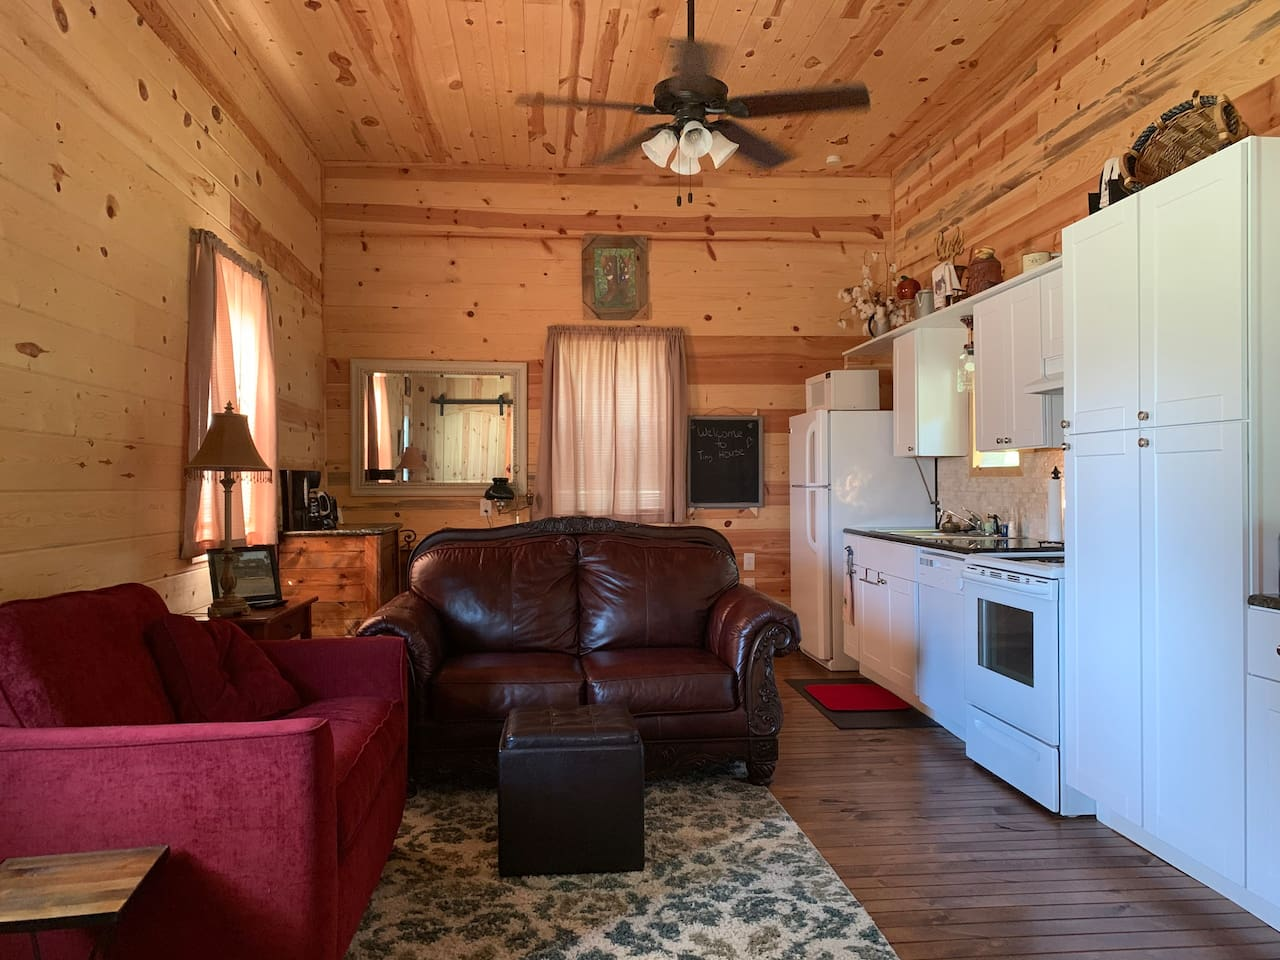 Welcome Home! The Tiny House is cozy and comfortable. One private bedroom, and one common space can accommodate up to 5 guests. 1 queen bed, 1 twin convertible bed, 1 blow up mattress. RV accommodations are on site for an additional charge.